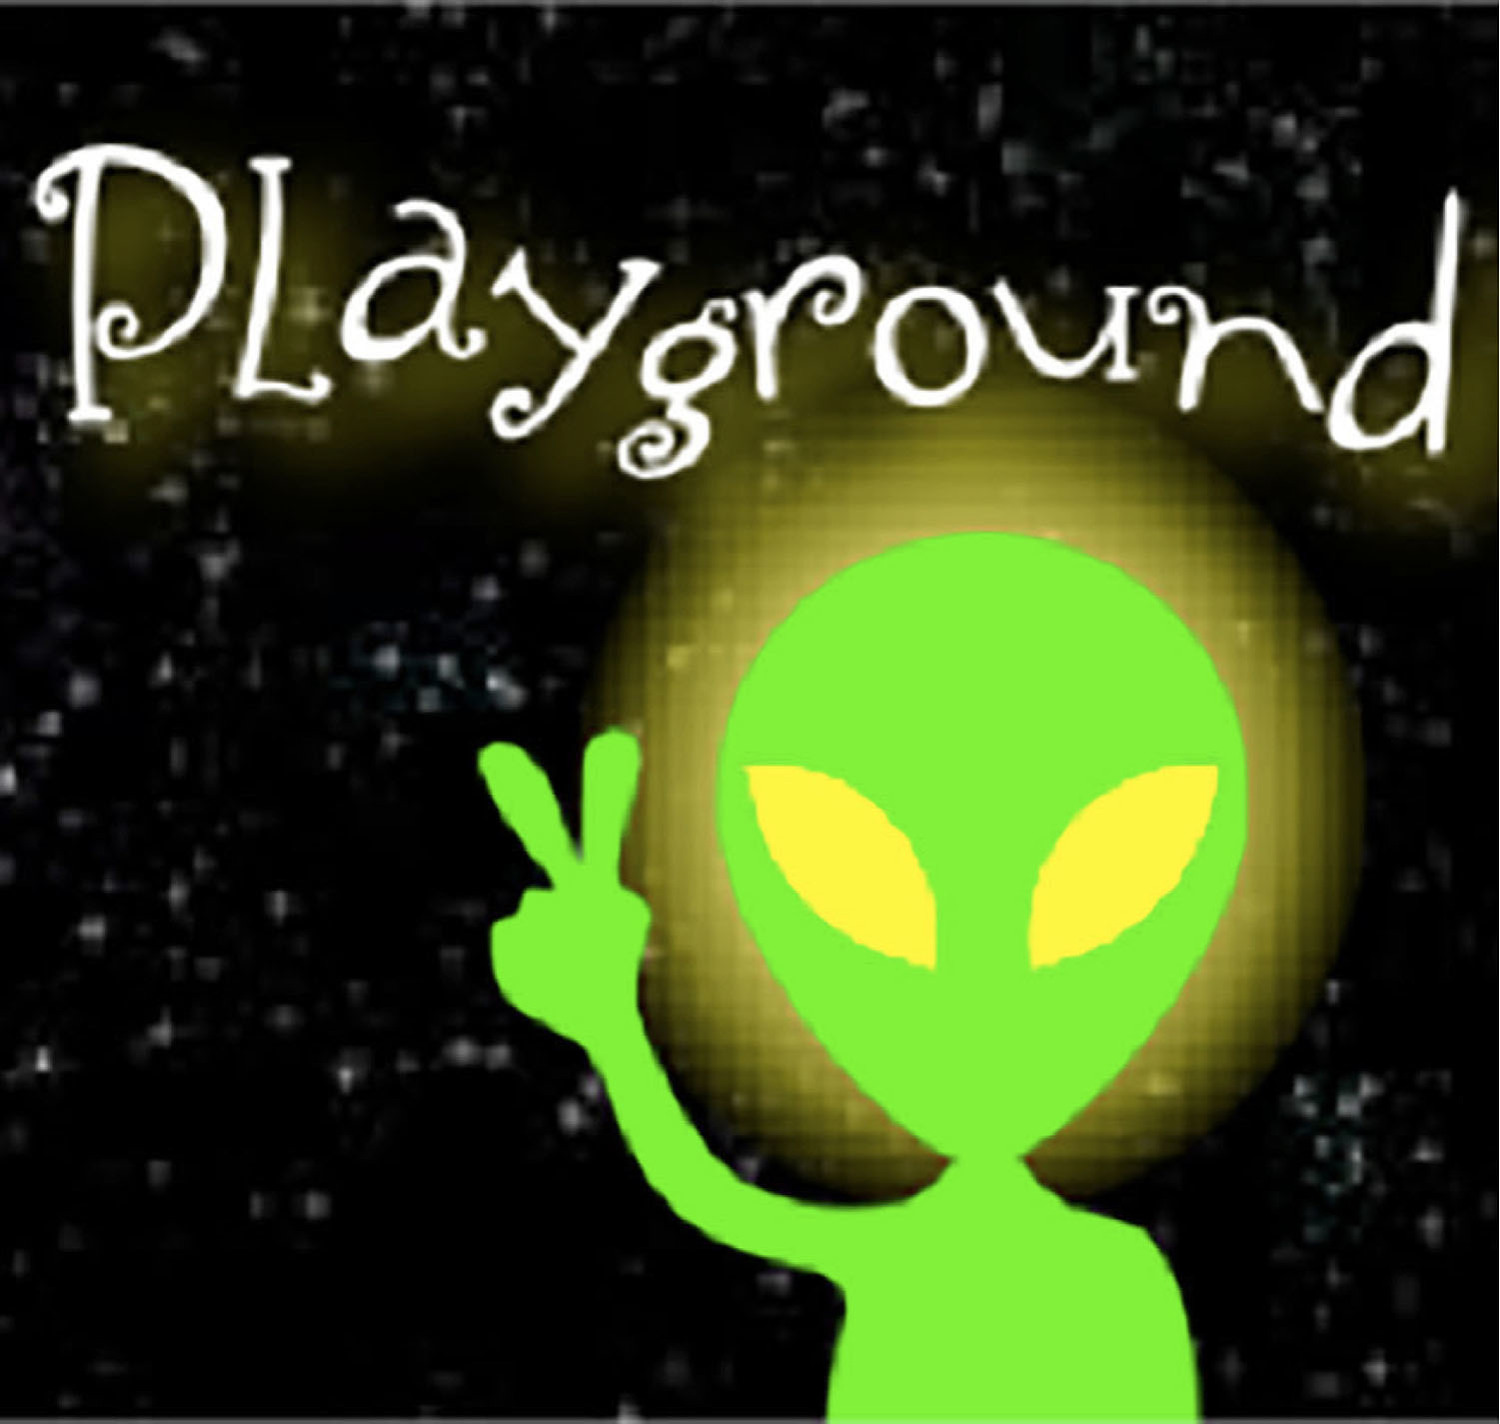 Off Planet Playground - Kerri Lake